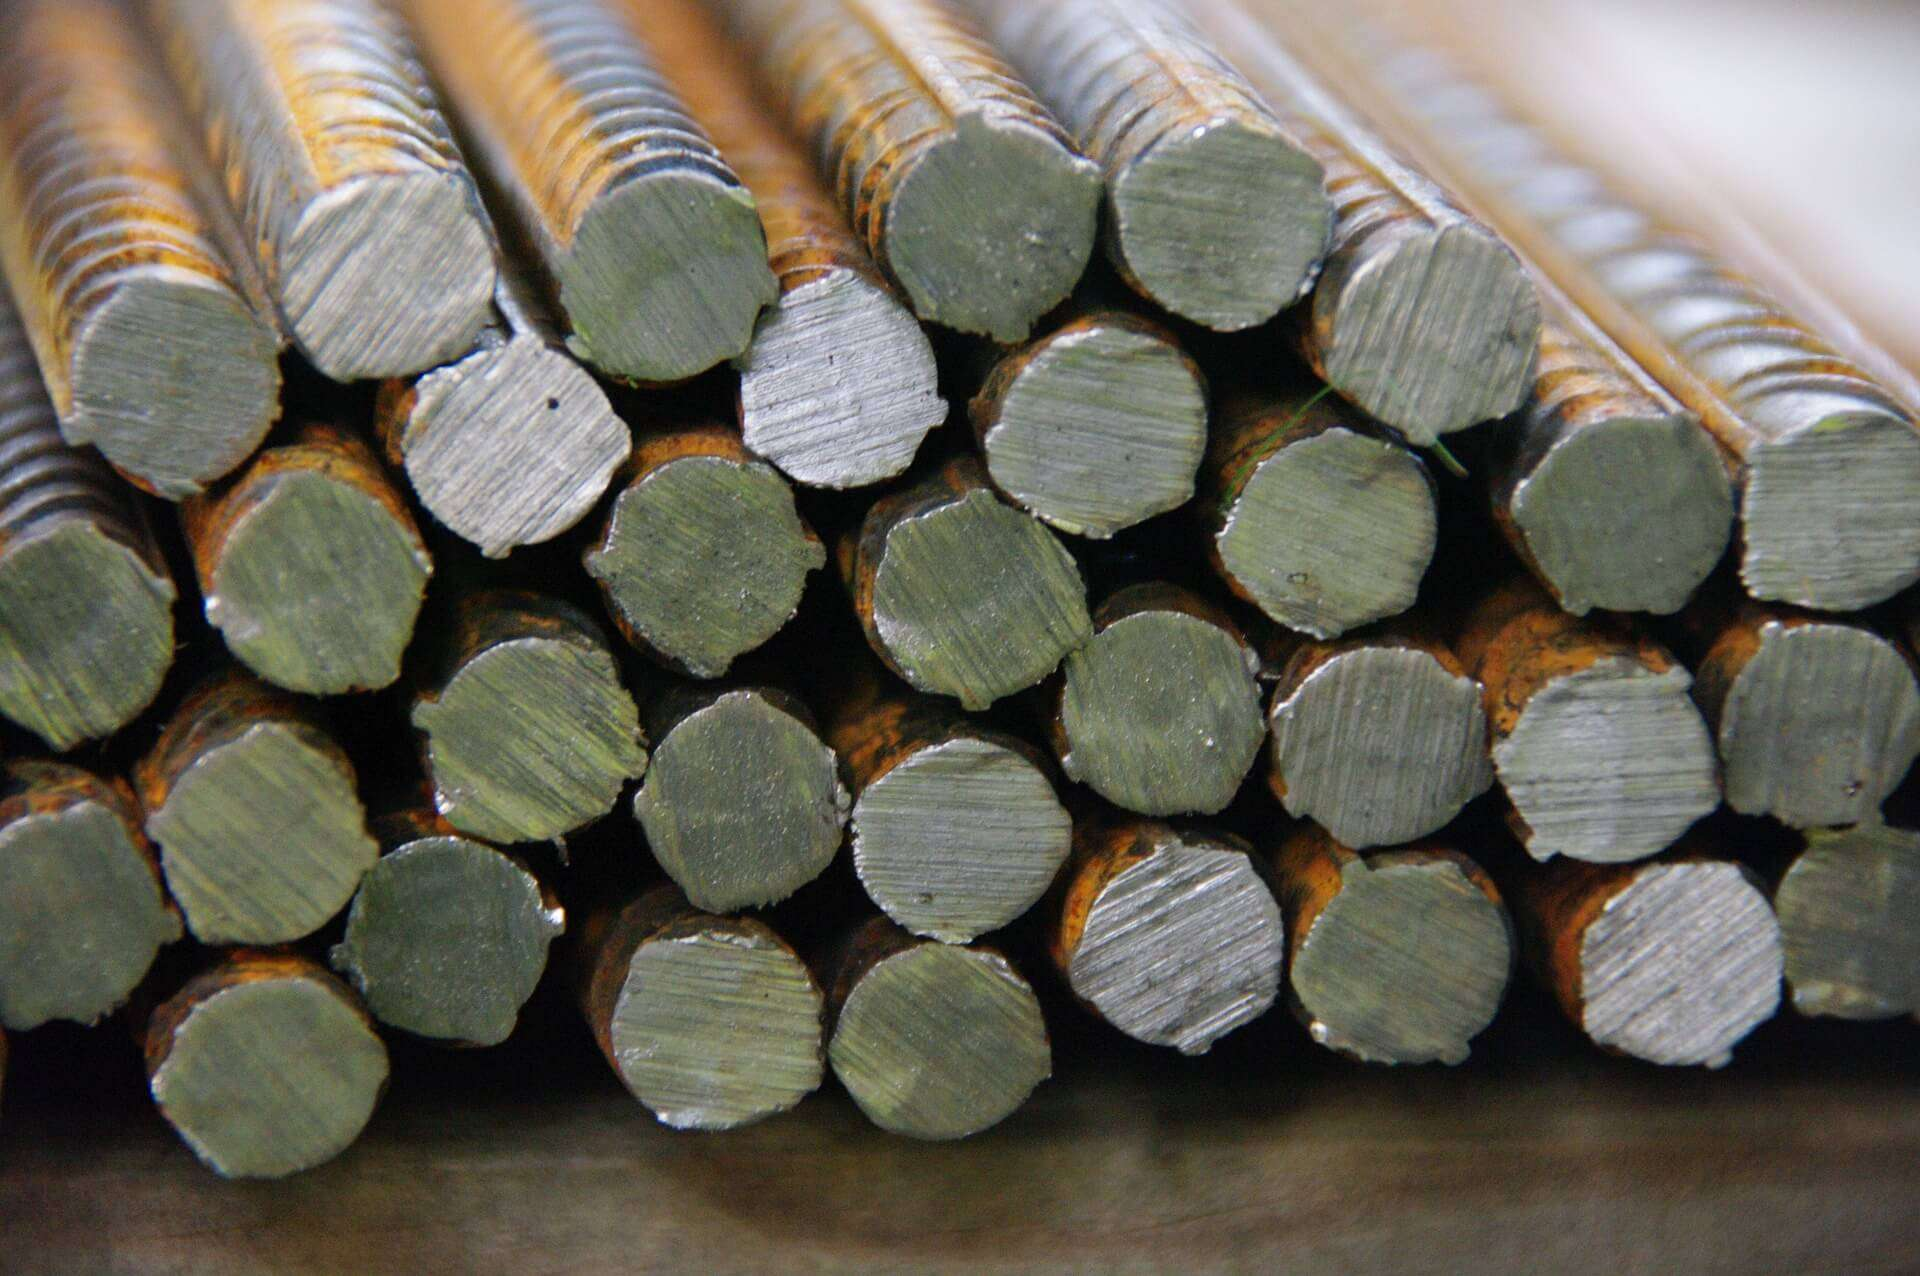 Steel Round Bars In Bundles